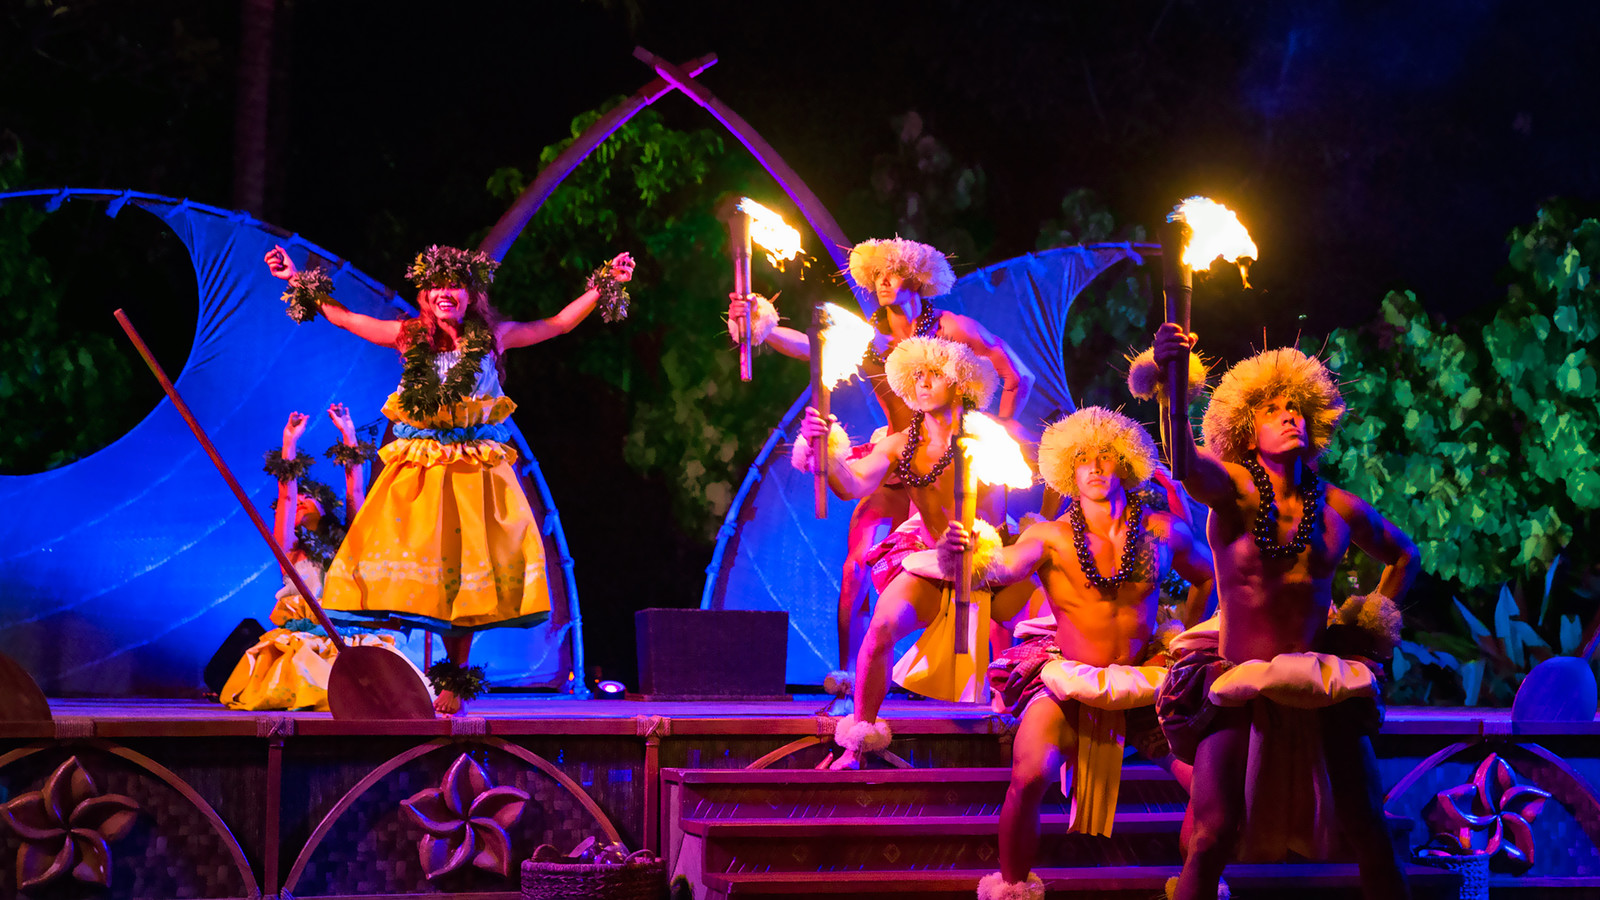 Fall Discount Offer For Disneys Aulani Resort In Hawaii - Aulani discounts